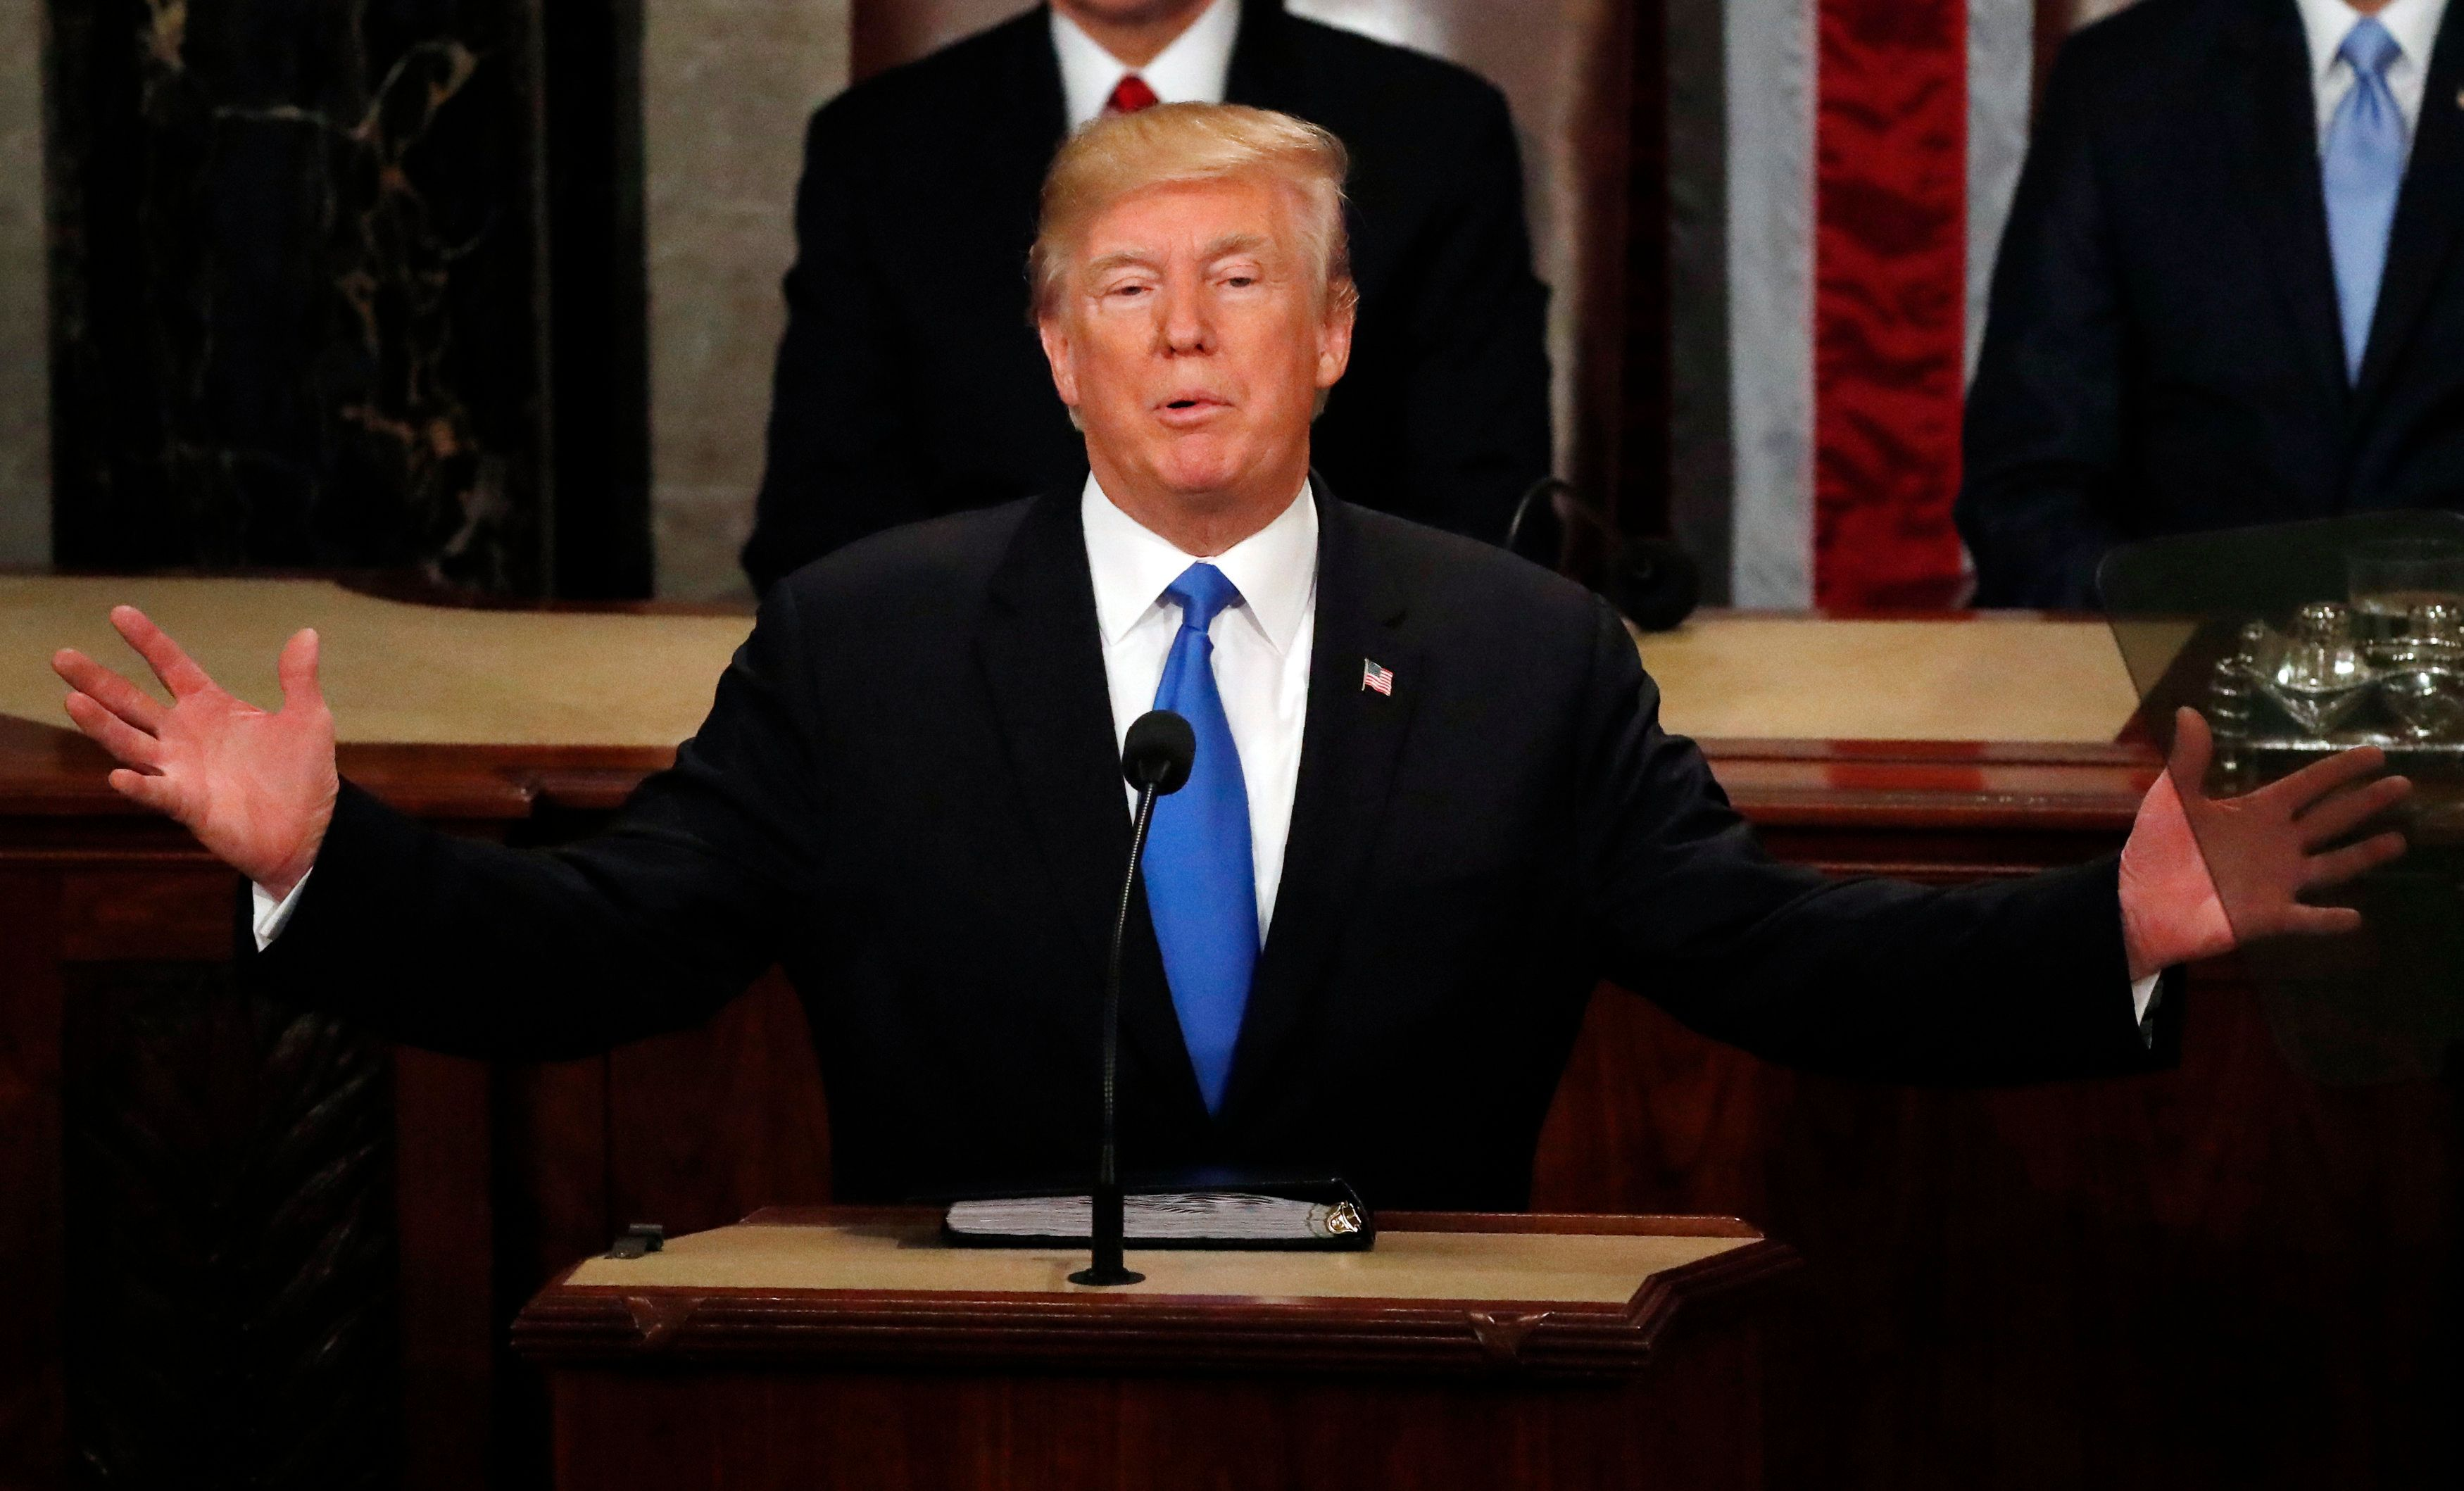 Donald Trump wrongly claims record ratings for State of the Union address